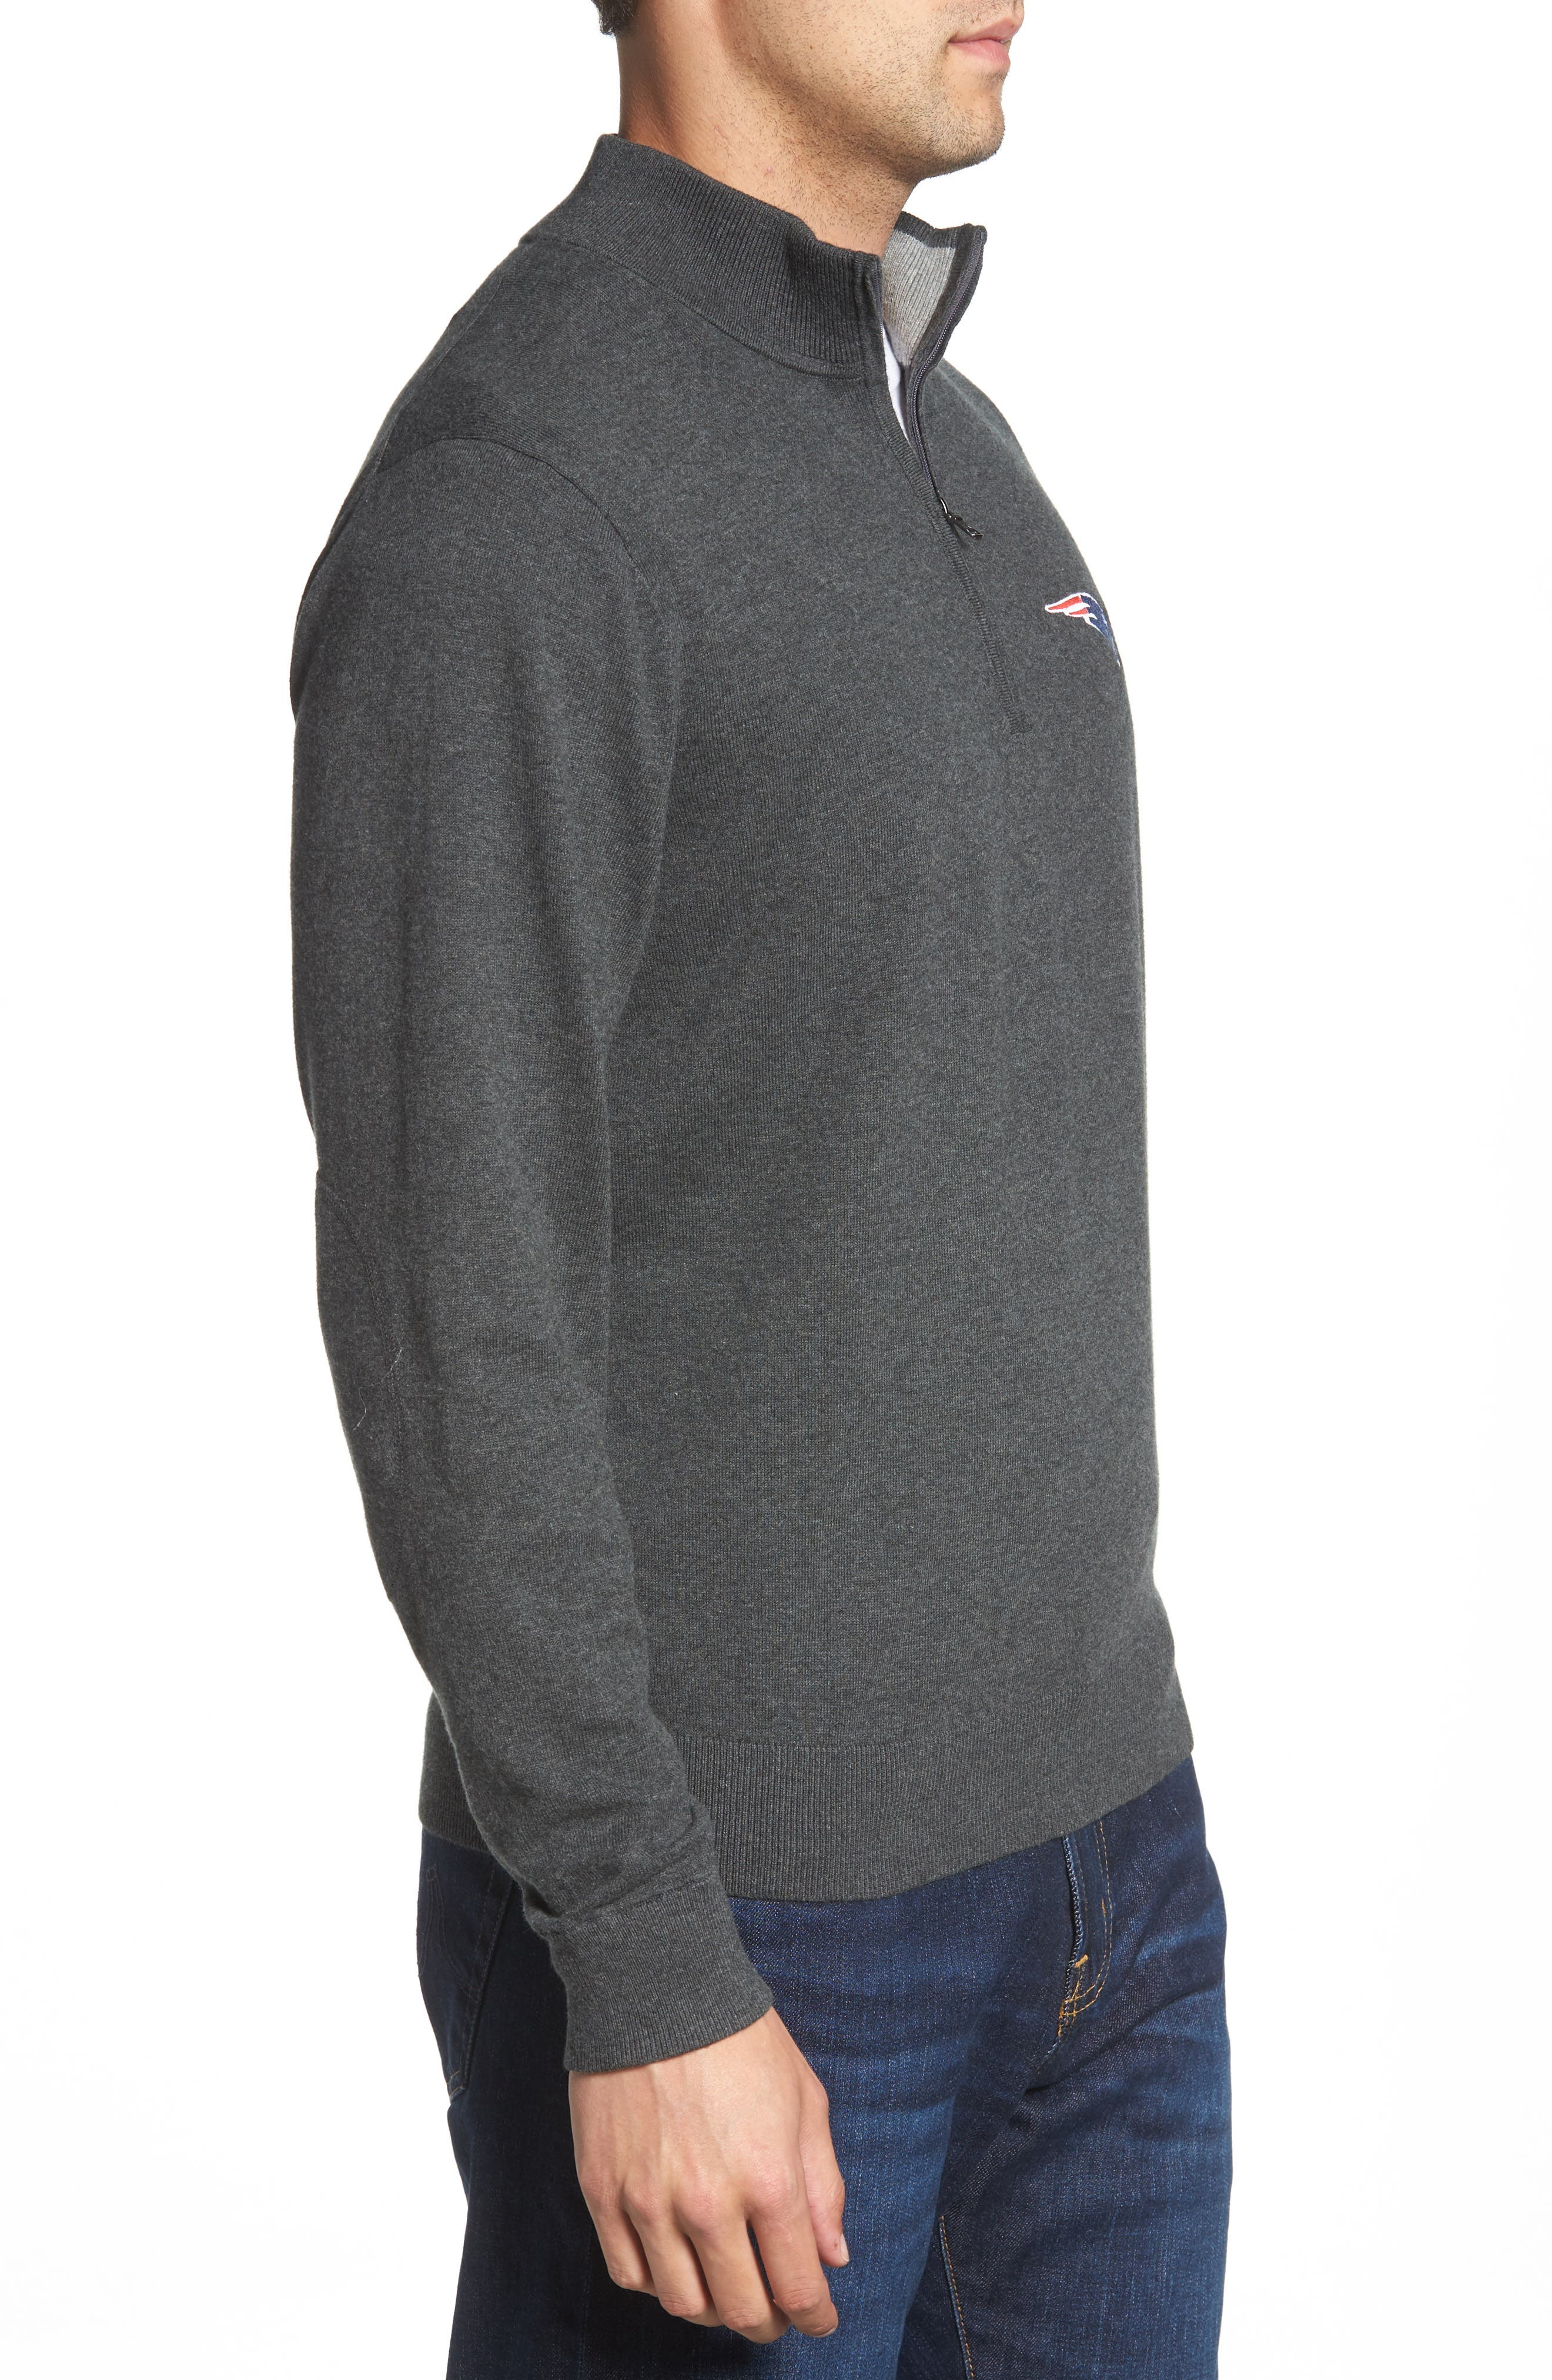 New England Patriots - Lakemont Regular Fit Quarter Zip Sweater,                             Alternate thumbnail 3, color,                             CHARCOAL HEATHER